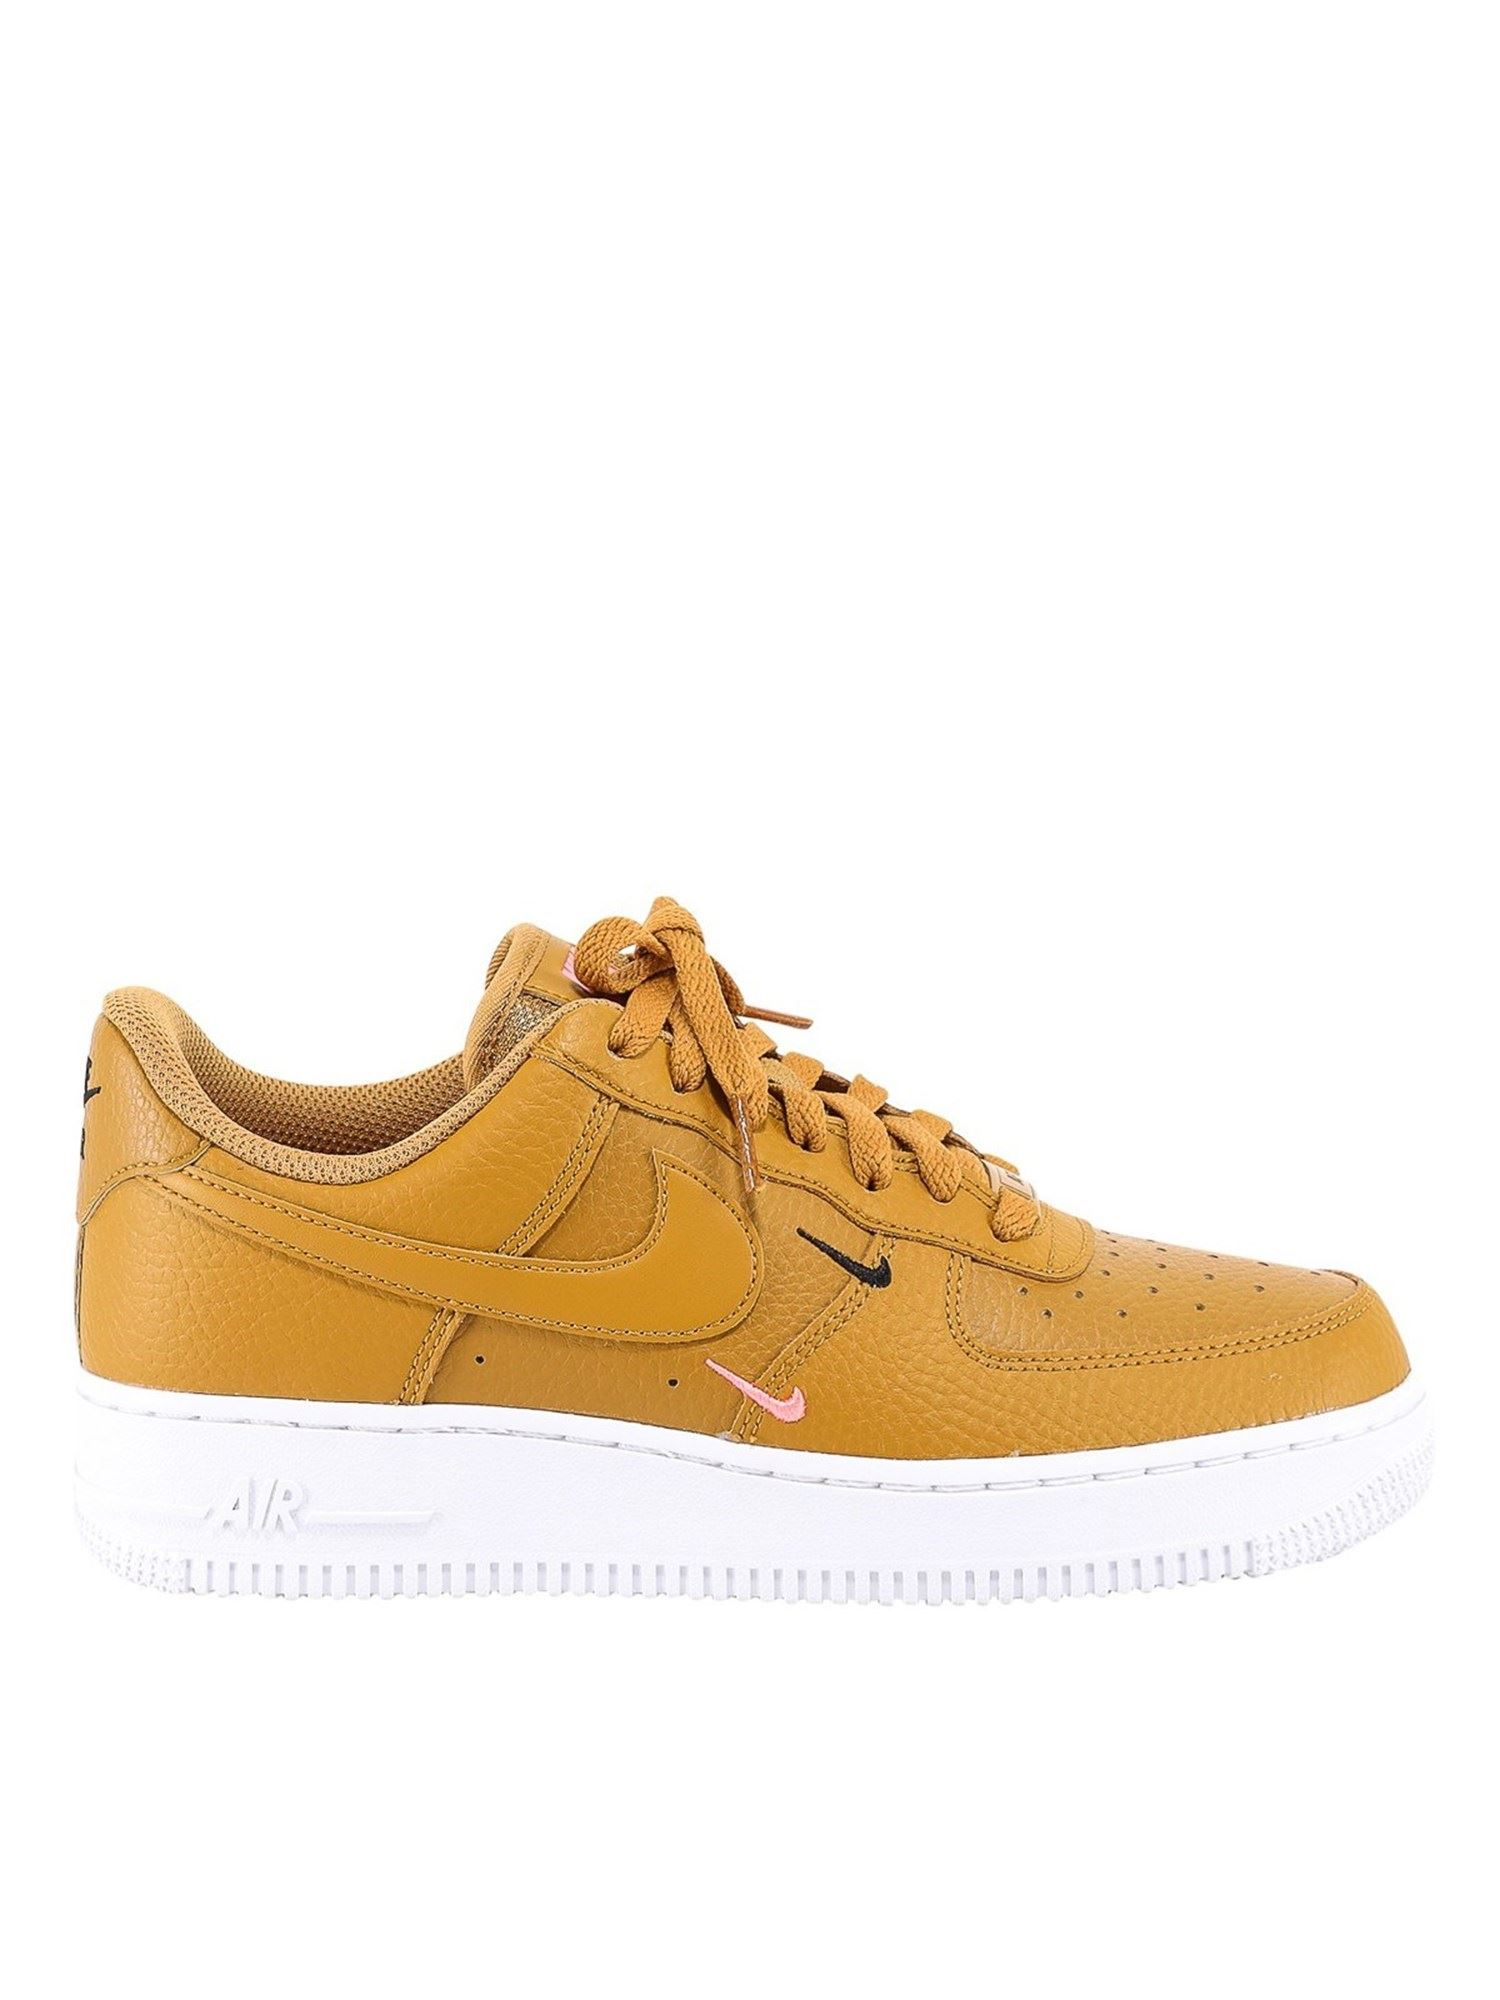 Nike AIR FORCE 1 LEATHER SNEAKERS IN YELLOW